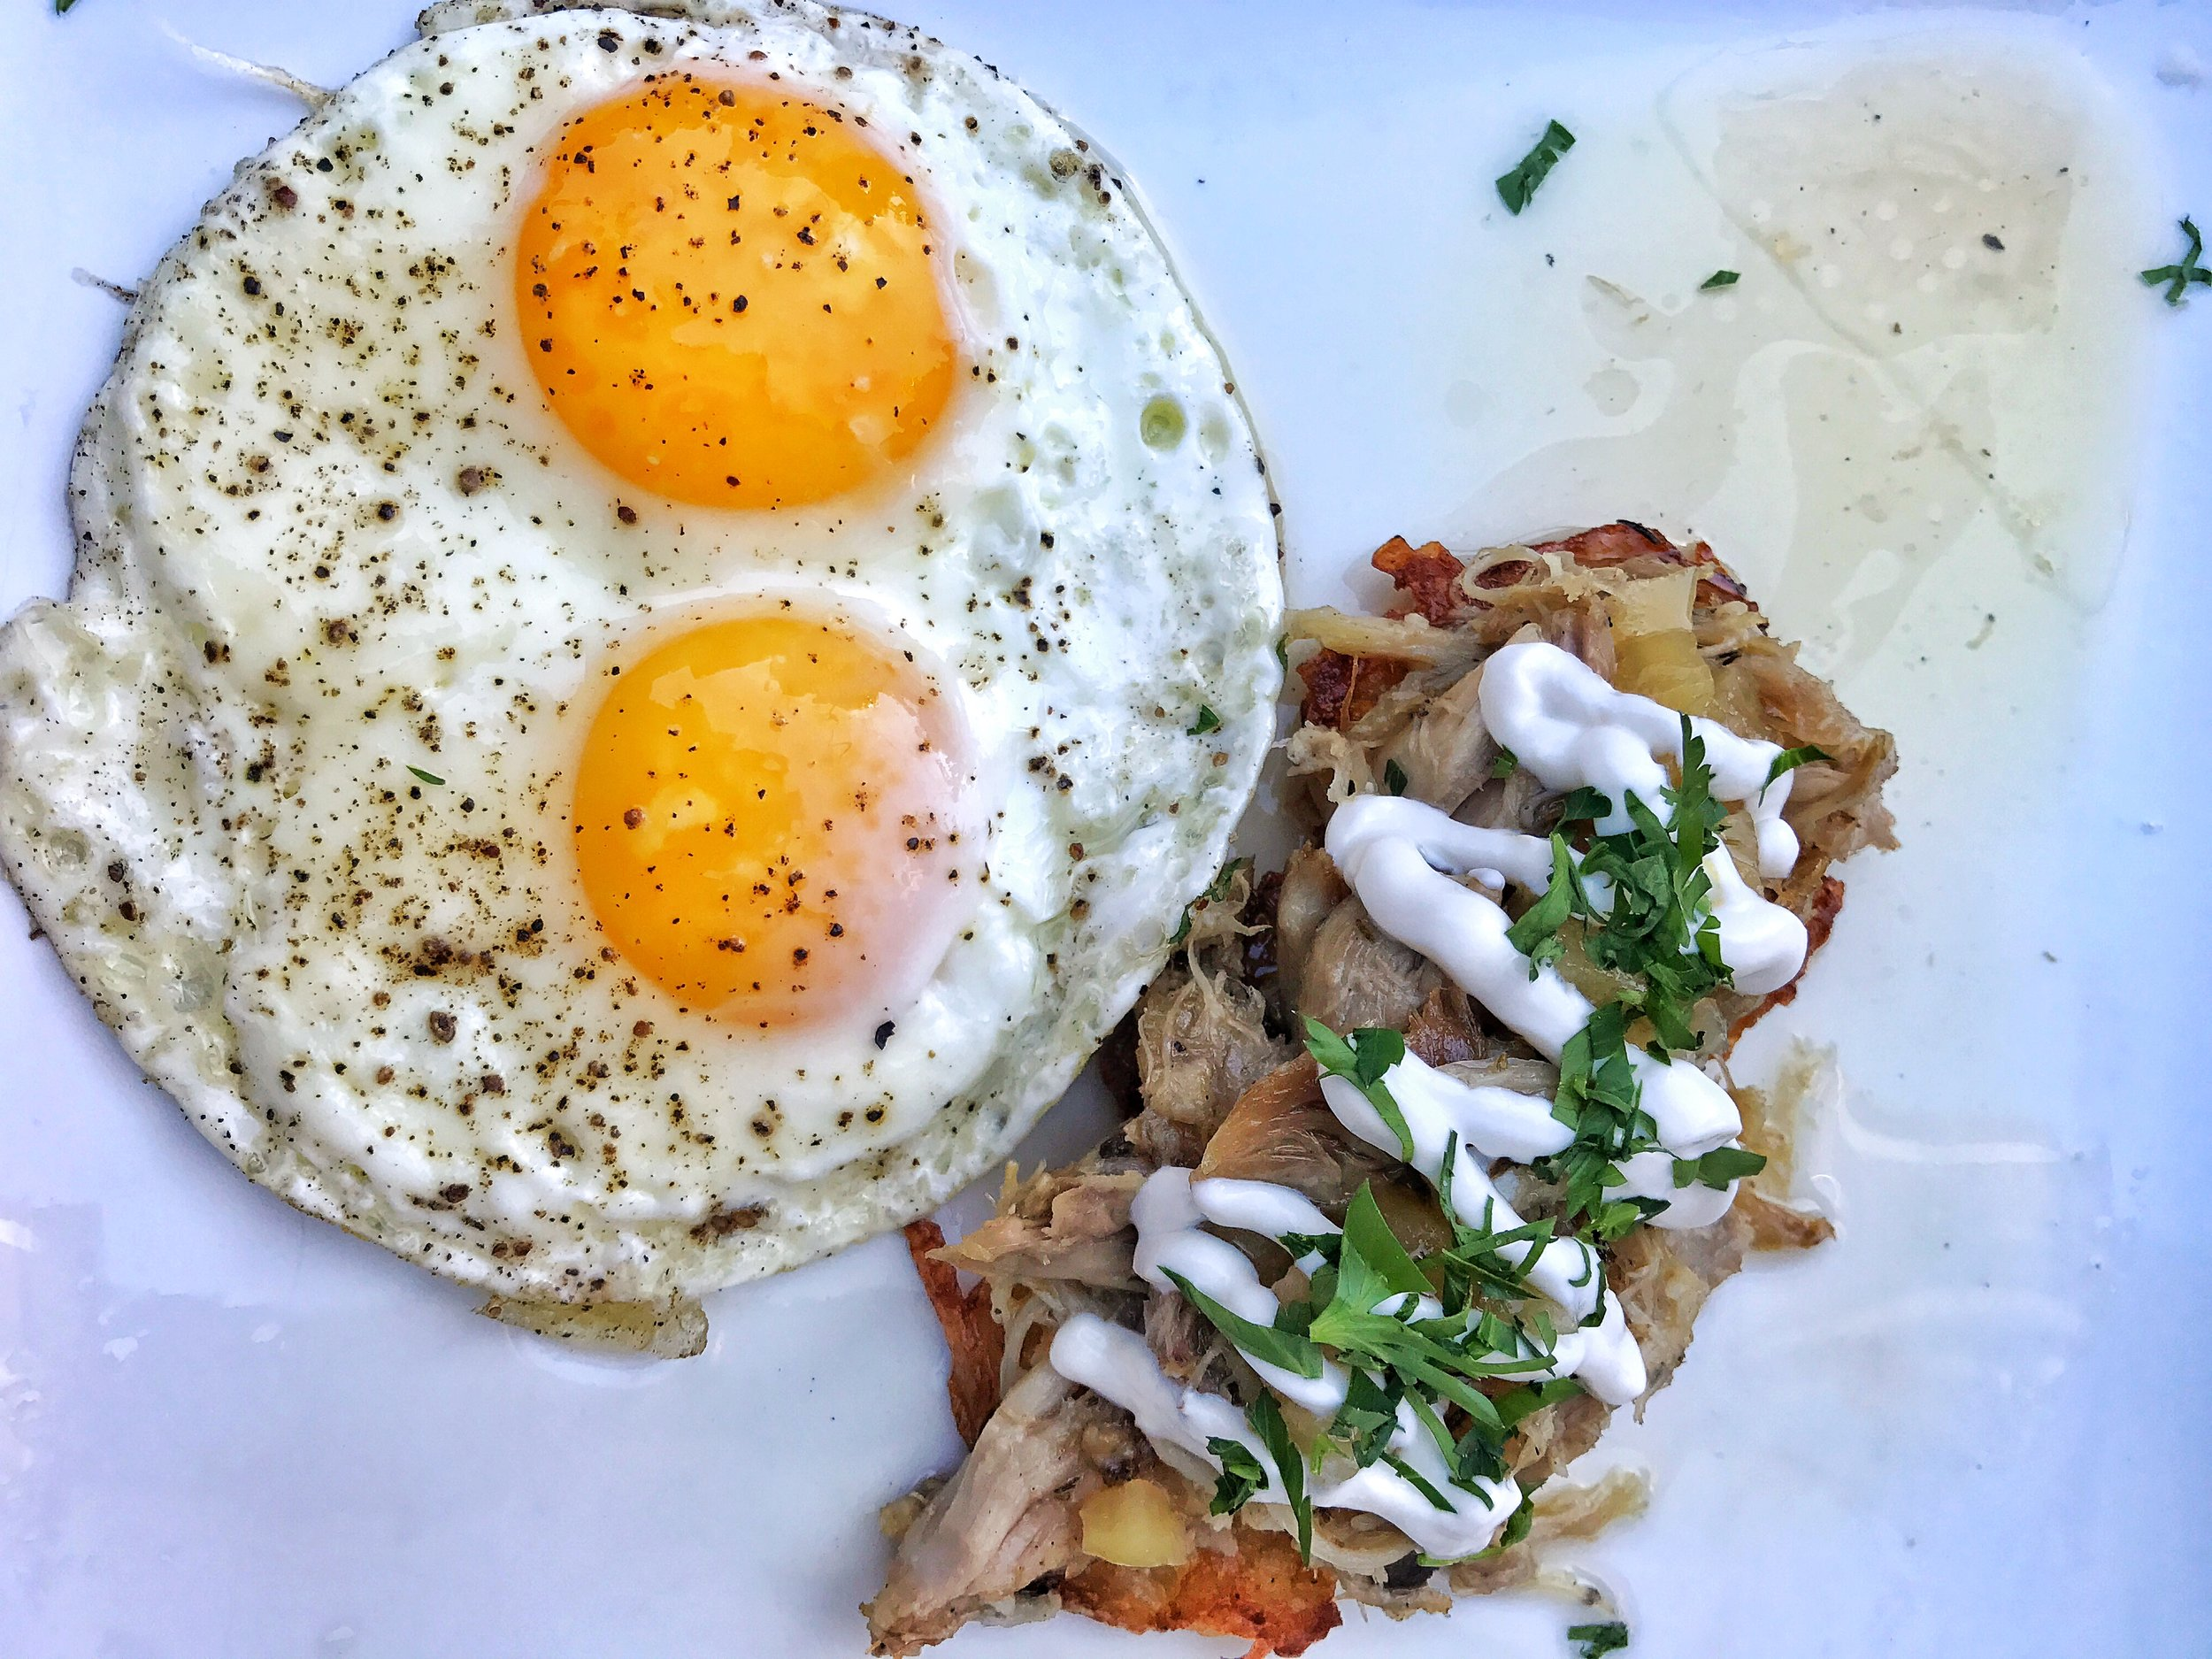 Chicken confit and potato latkes with sunnyside up eggs and apple thyme jam with sour cream on top